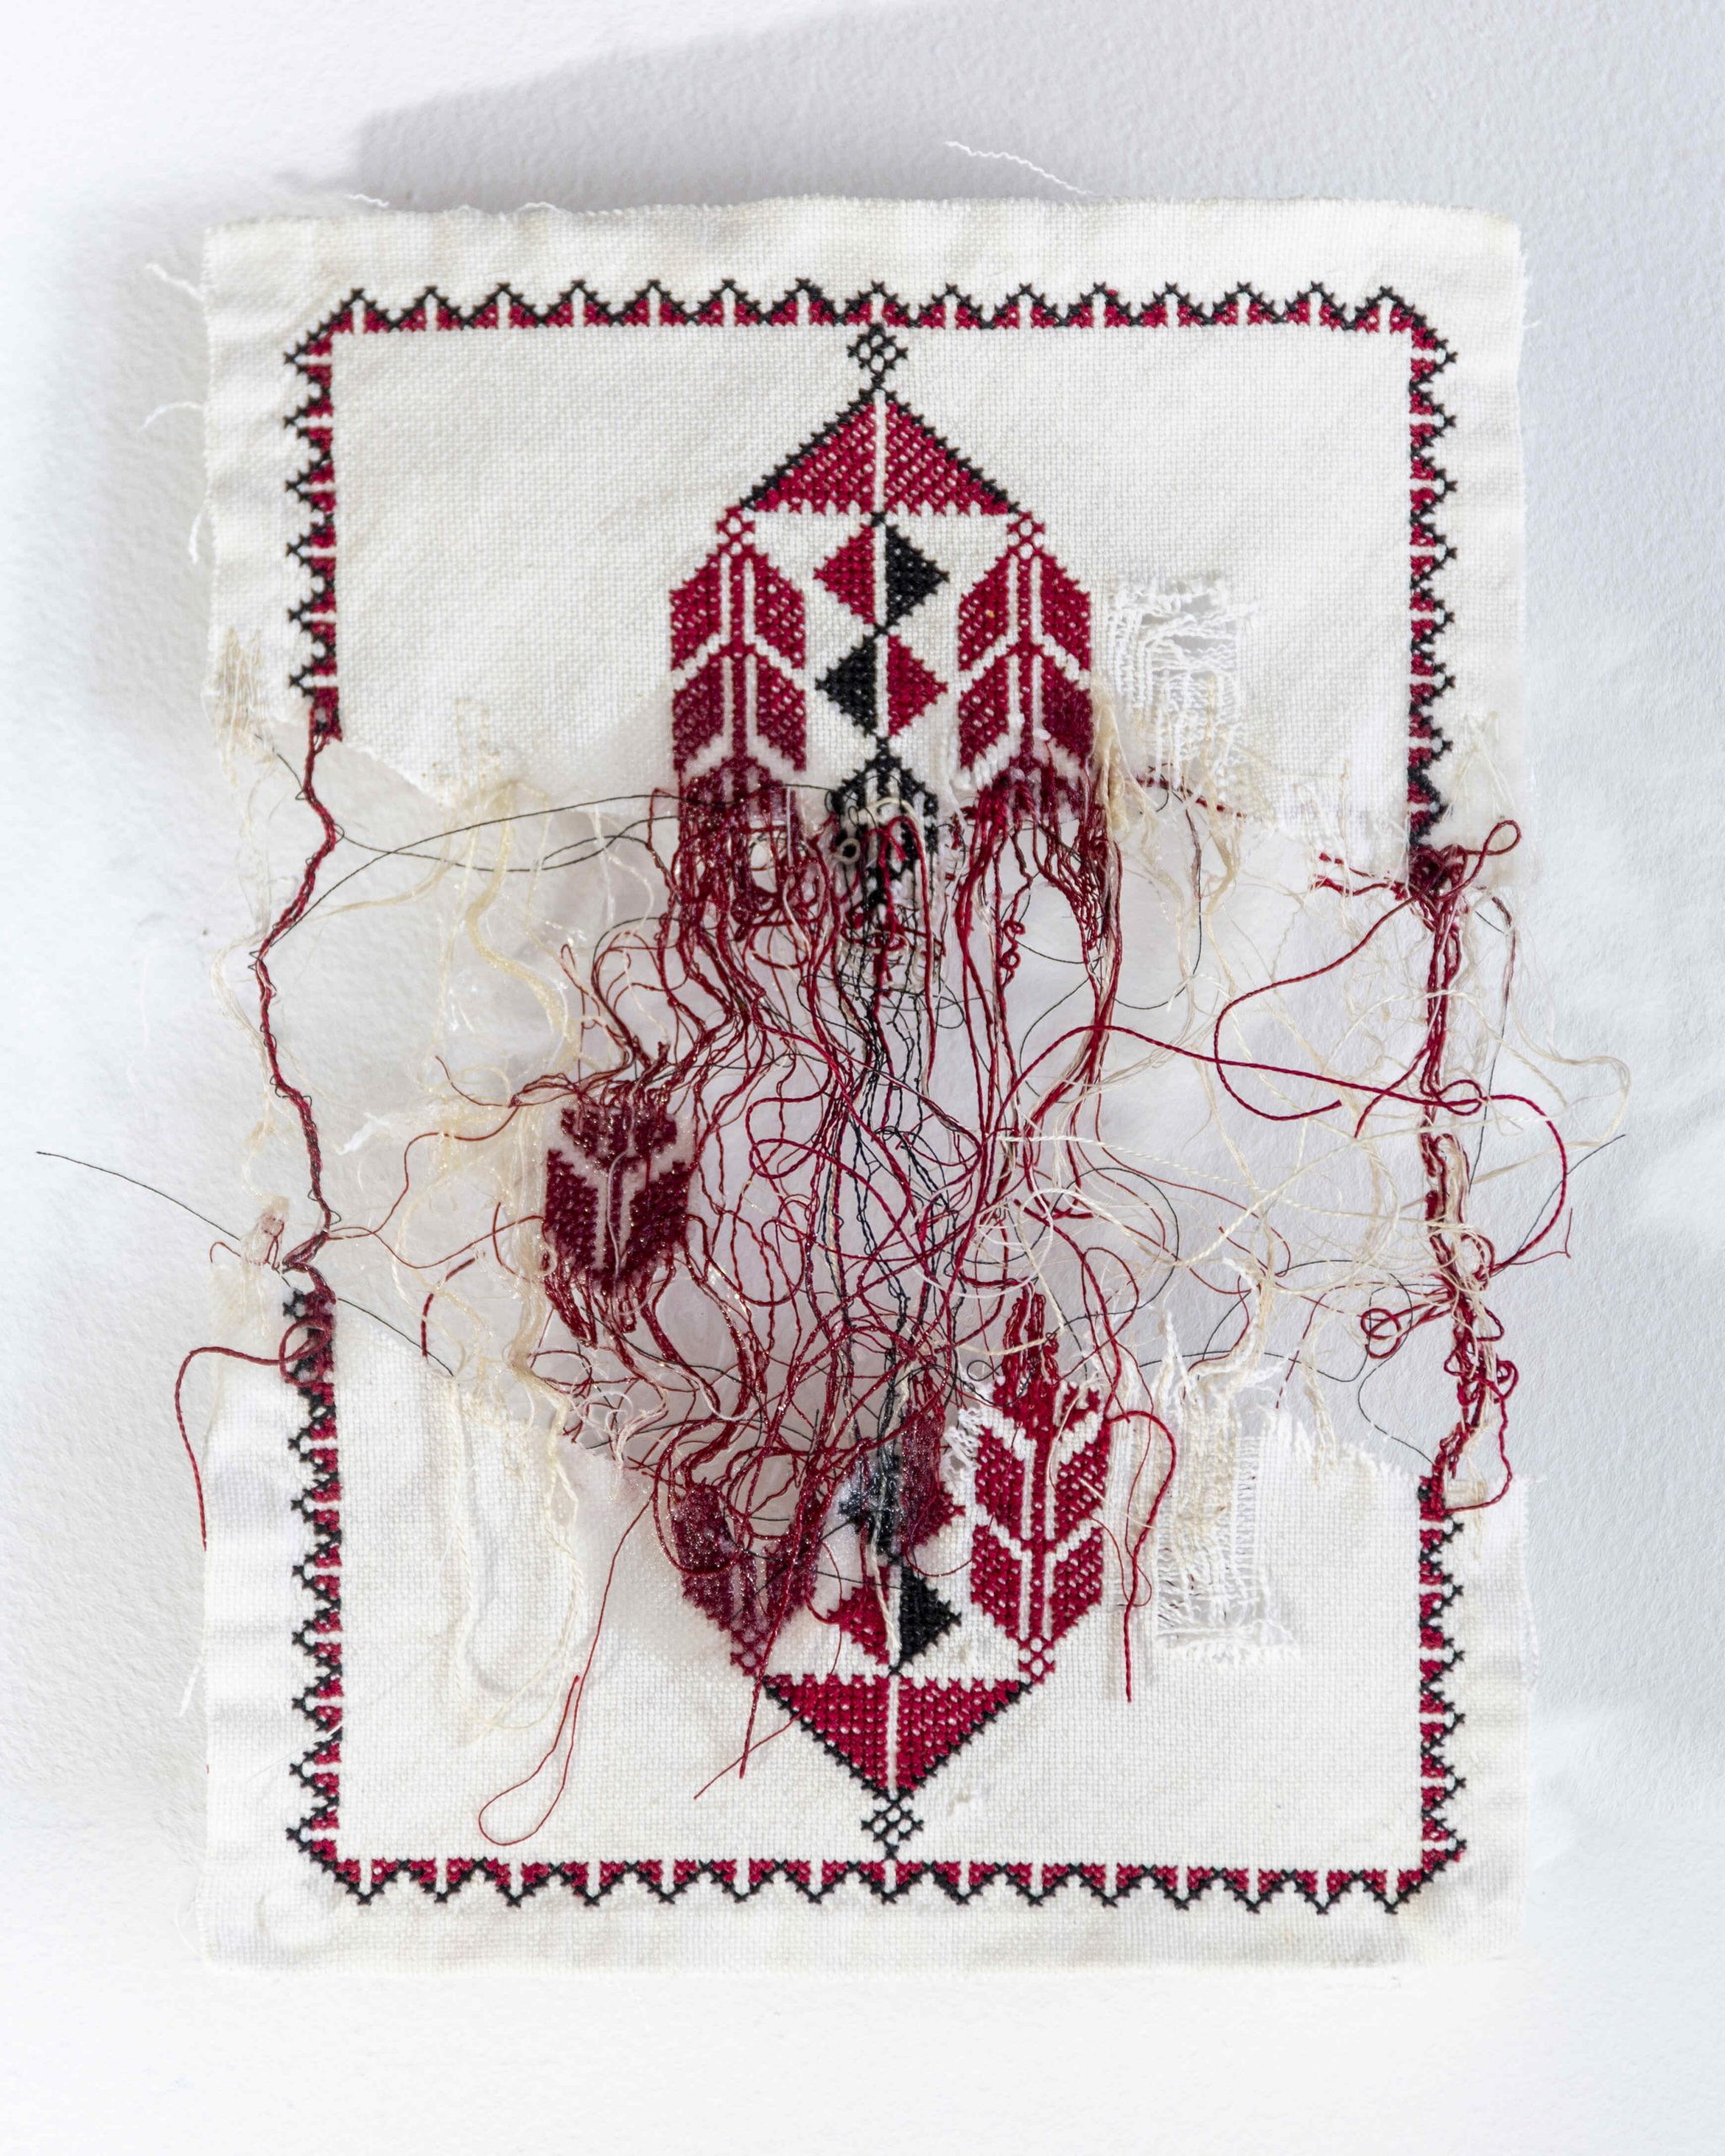 Poetics of Separation II, 2020 Fiber, cotton thread, cotton fabric and resin, 25.5 x 20.5 x 3.2 cm